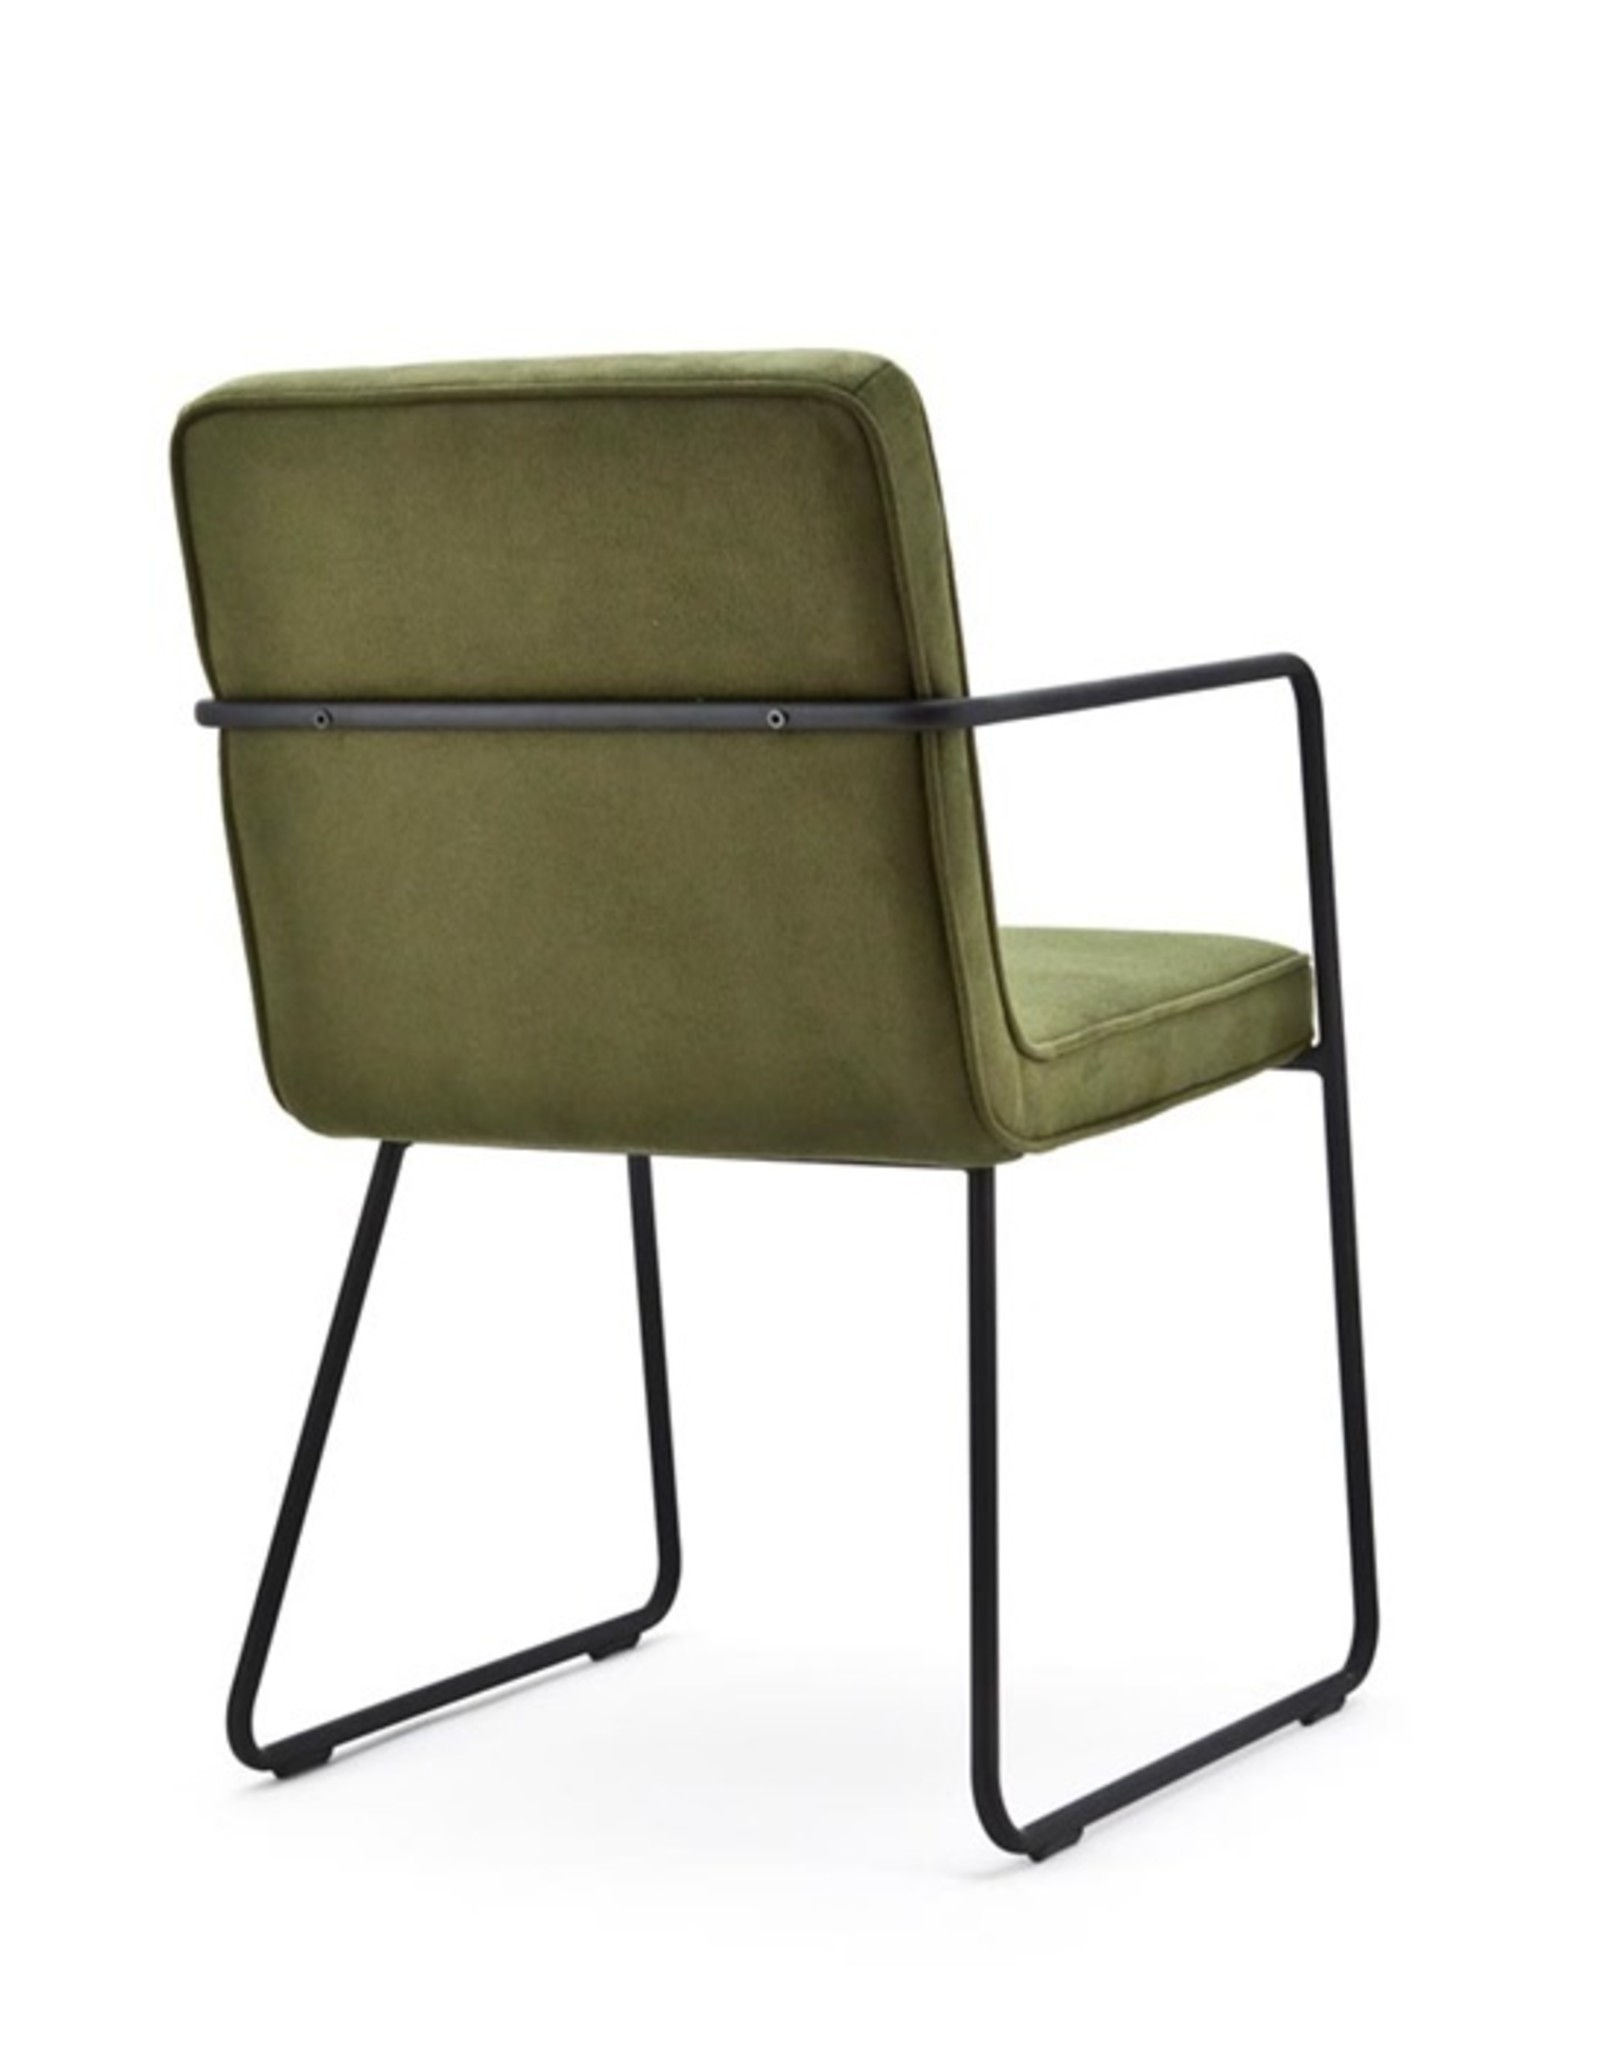 By-Boo Chair Amber - green